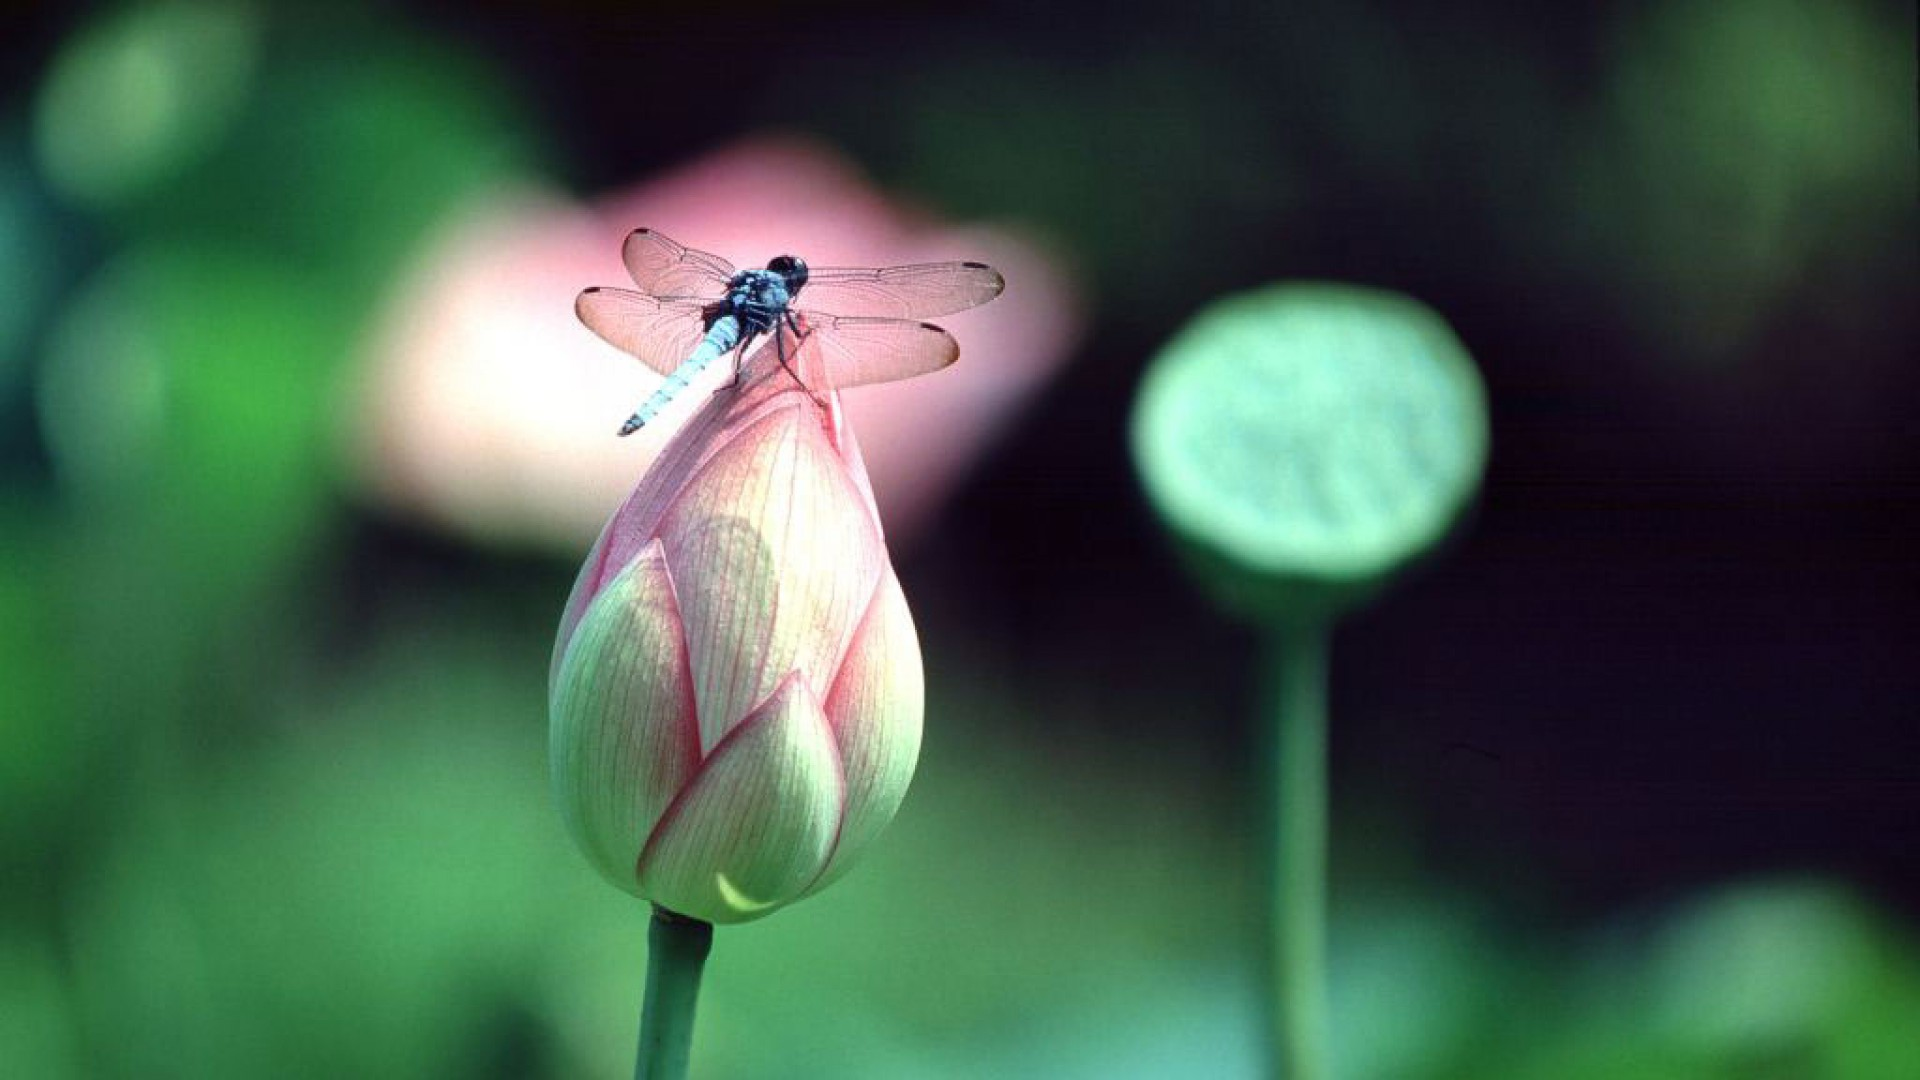 dragonfly-on-lilies-1920x1080-1920×1080-wallpaper-wp3804912